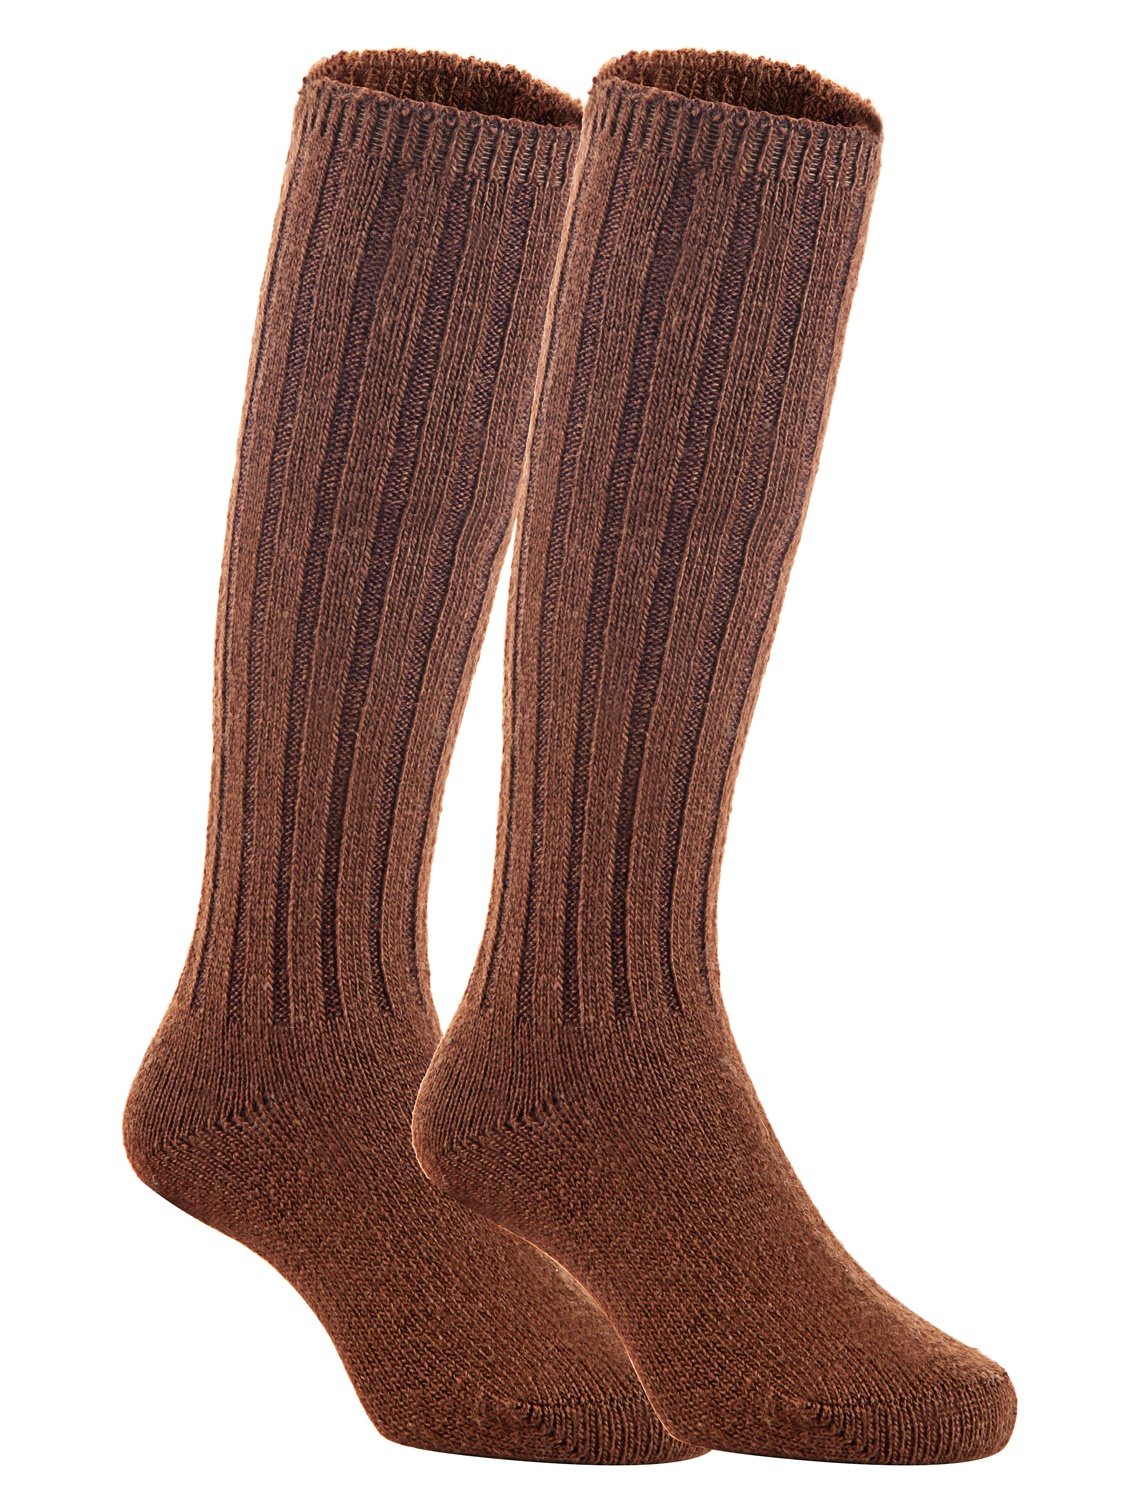 Lian LifeStyle Unisex Baby Children 3 Pairs  Knee High Wool Blend Boot Socks Size 2-4Y  (Coffee)